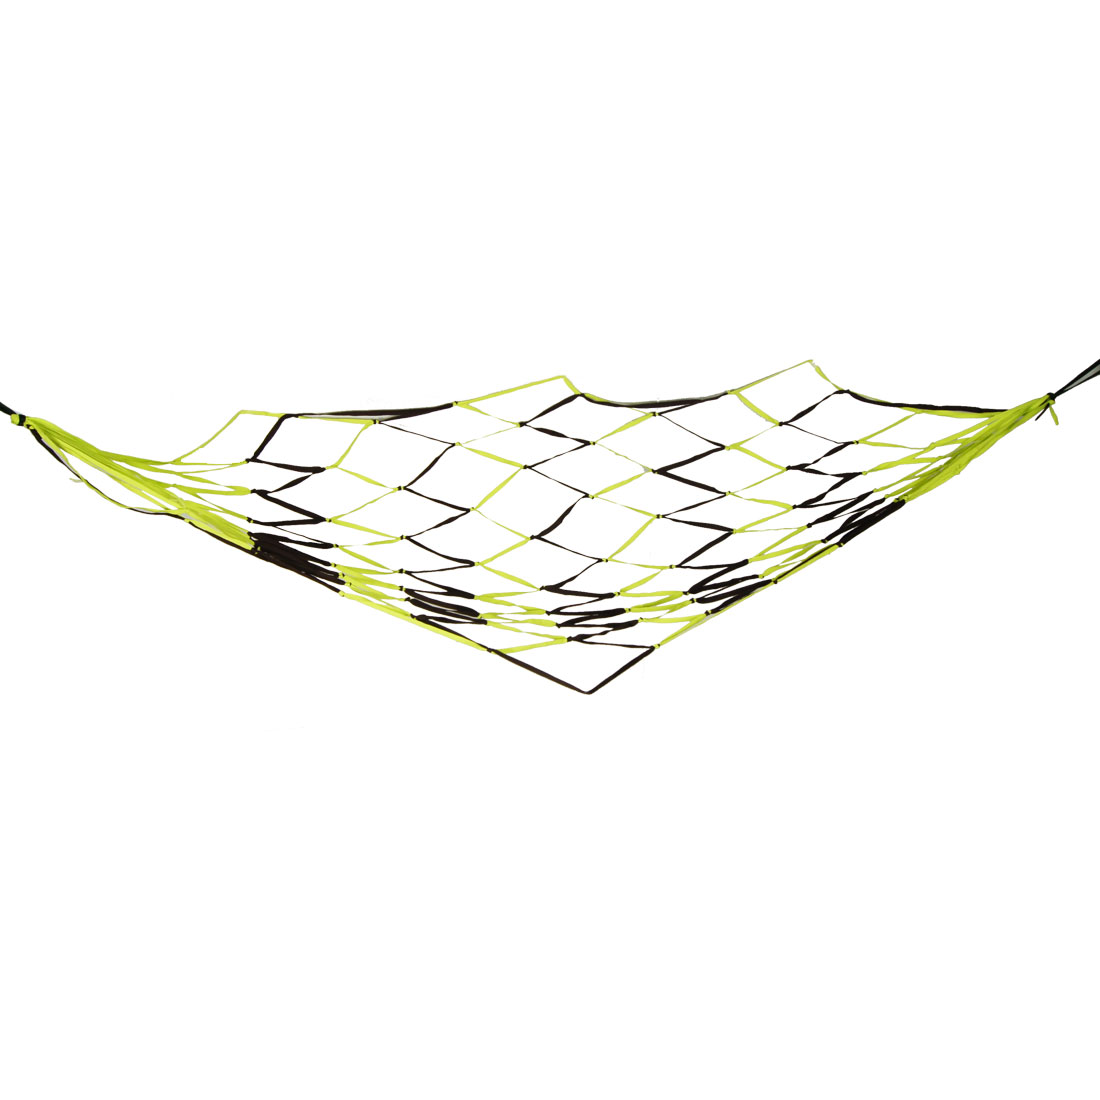 "71"" x 40"" Yellowgreen Coffee Color Nylon Hammock Mesh Net Sleeping Bed"